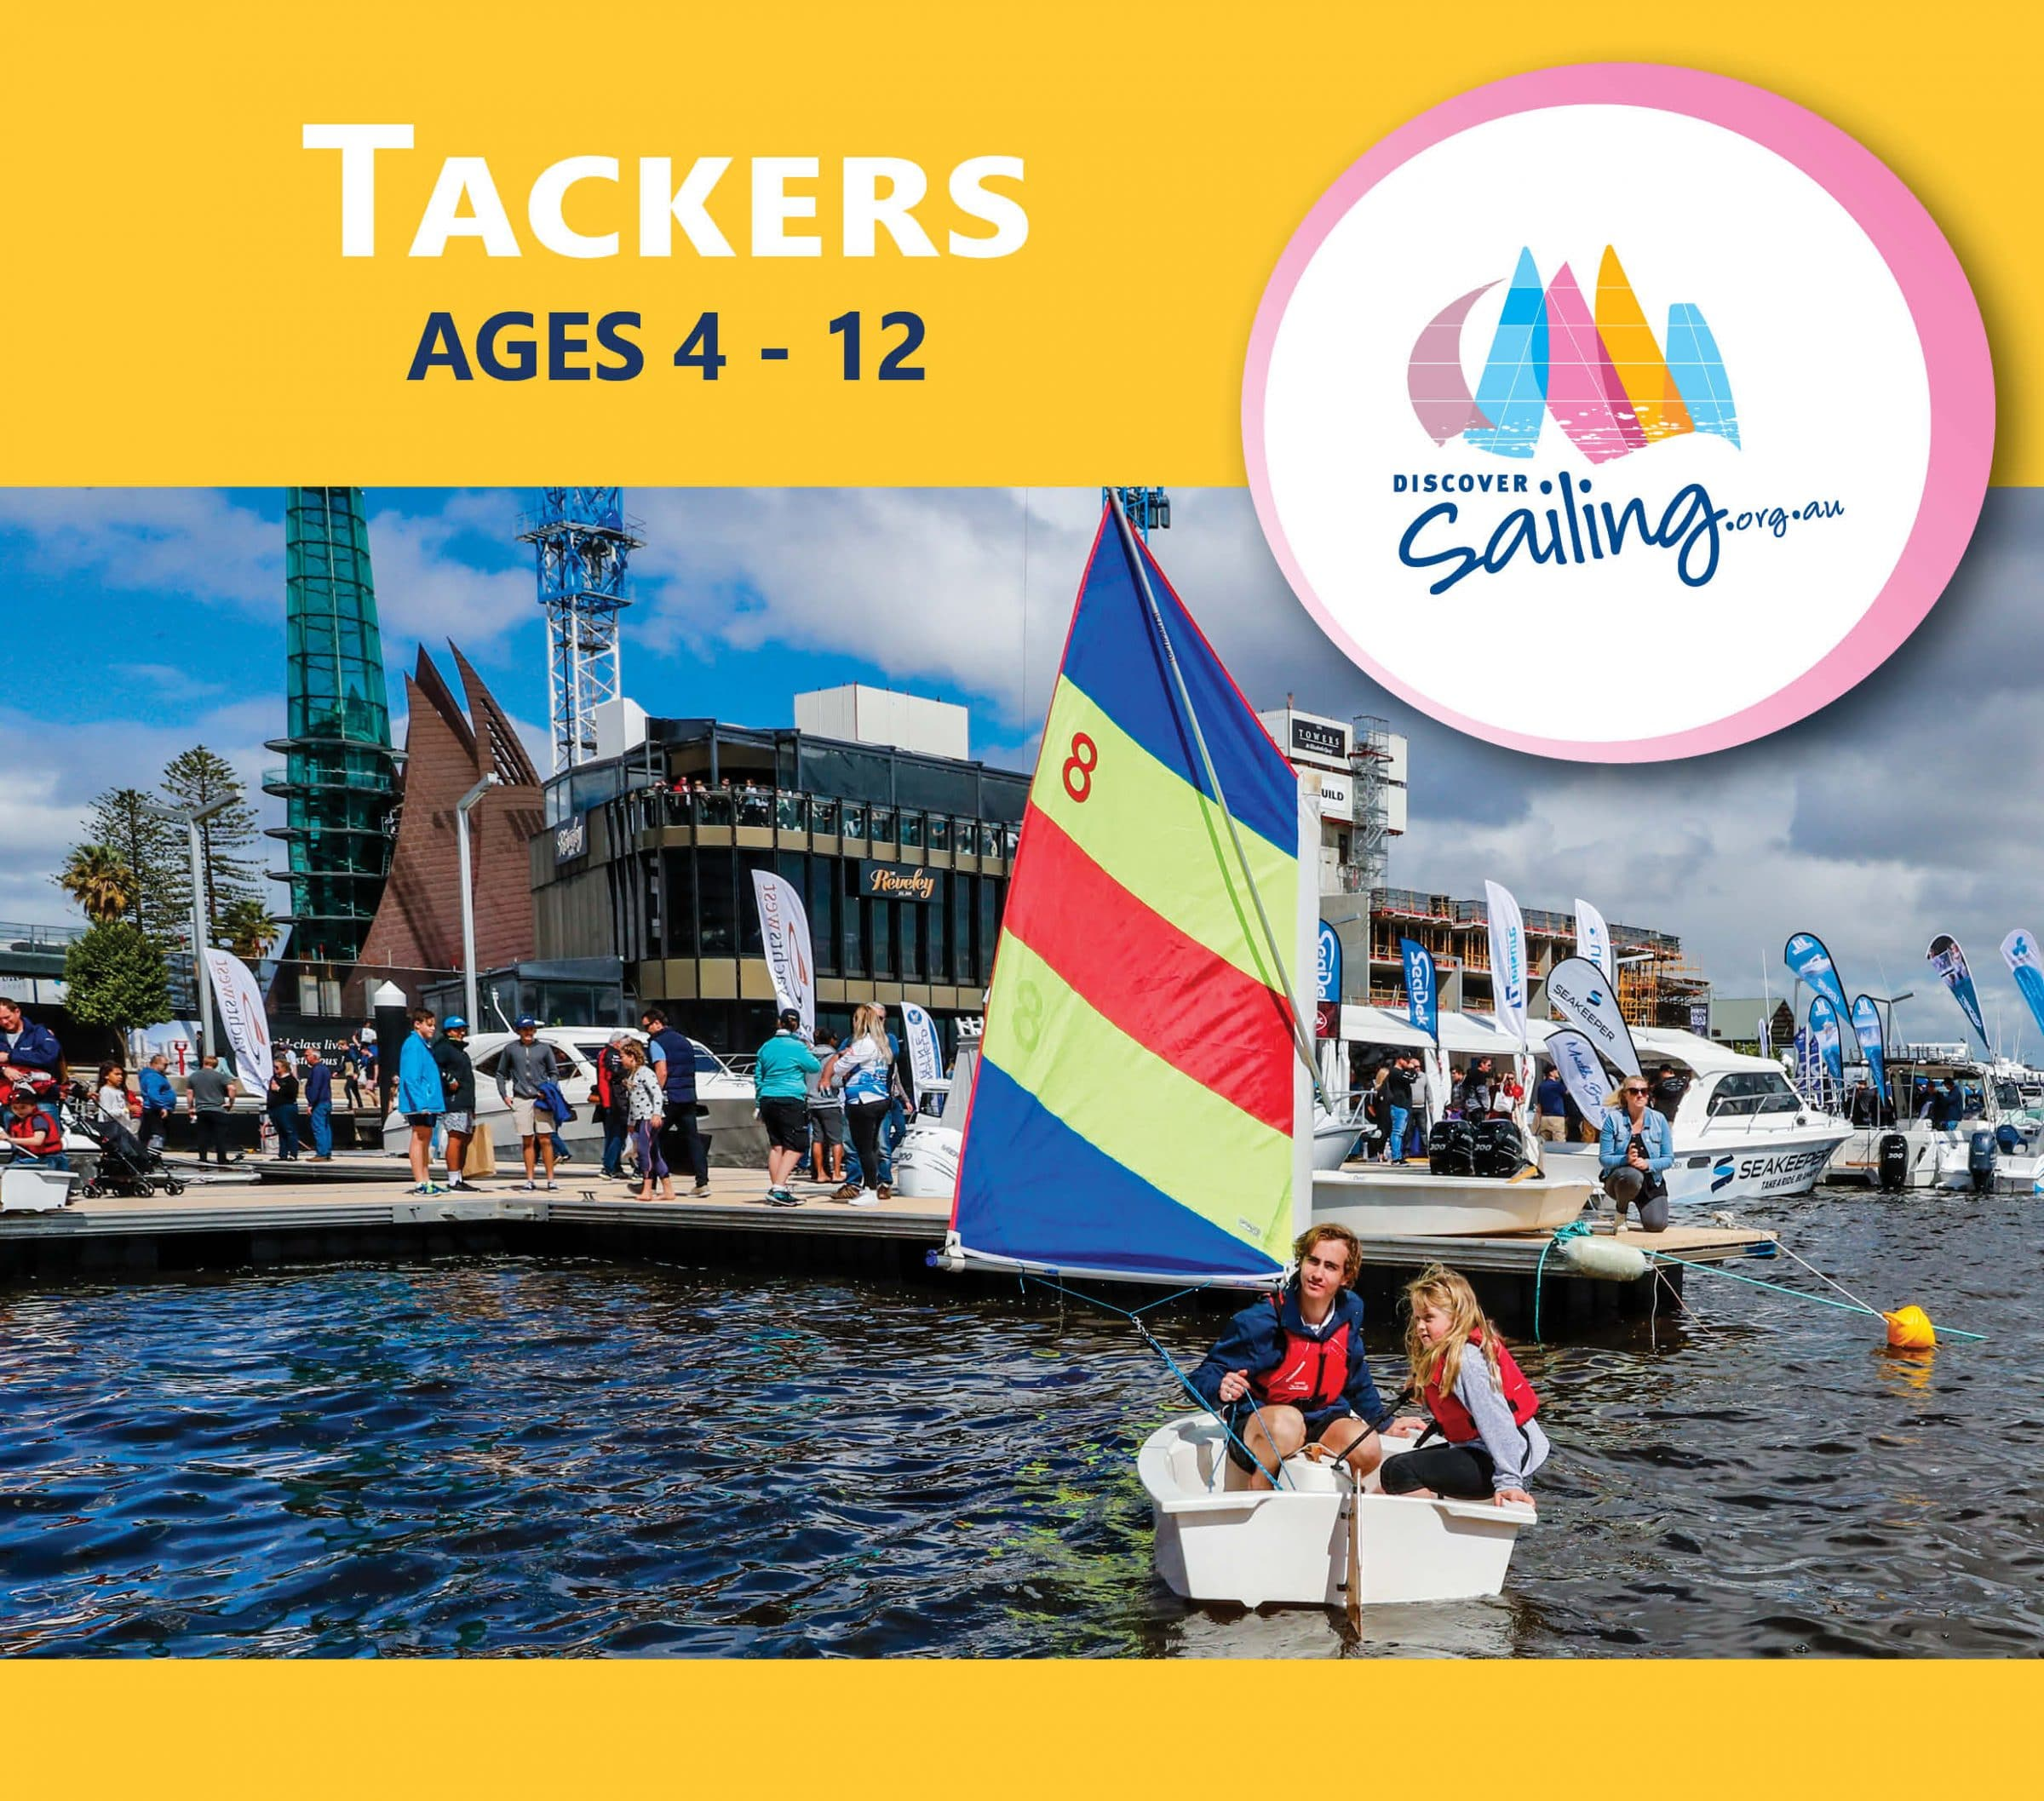 tackers experience at the 2018 perth international boat show